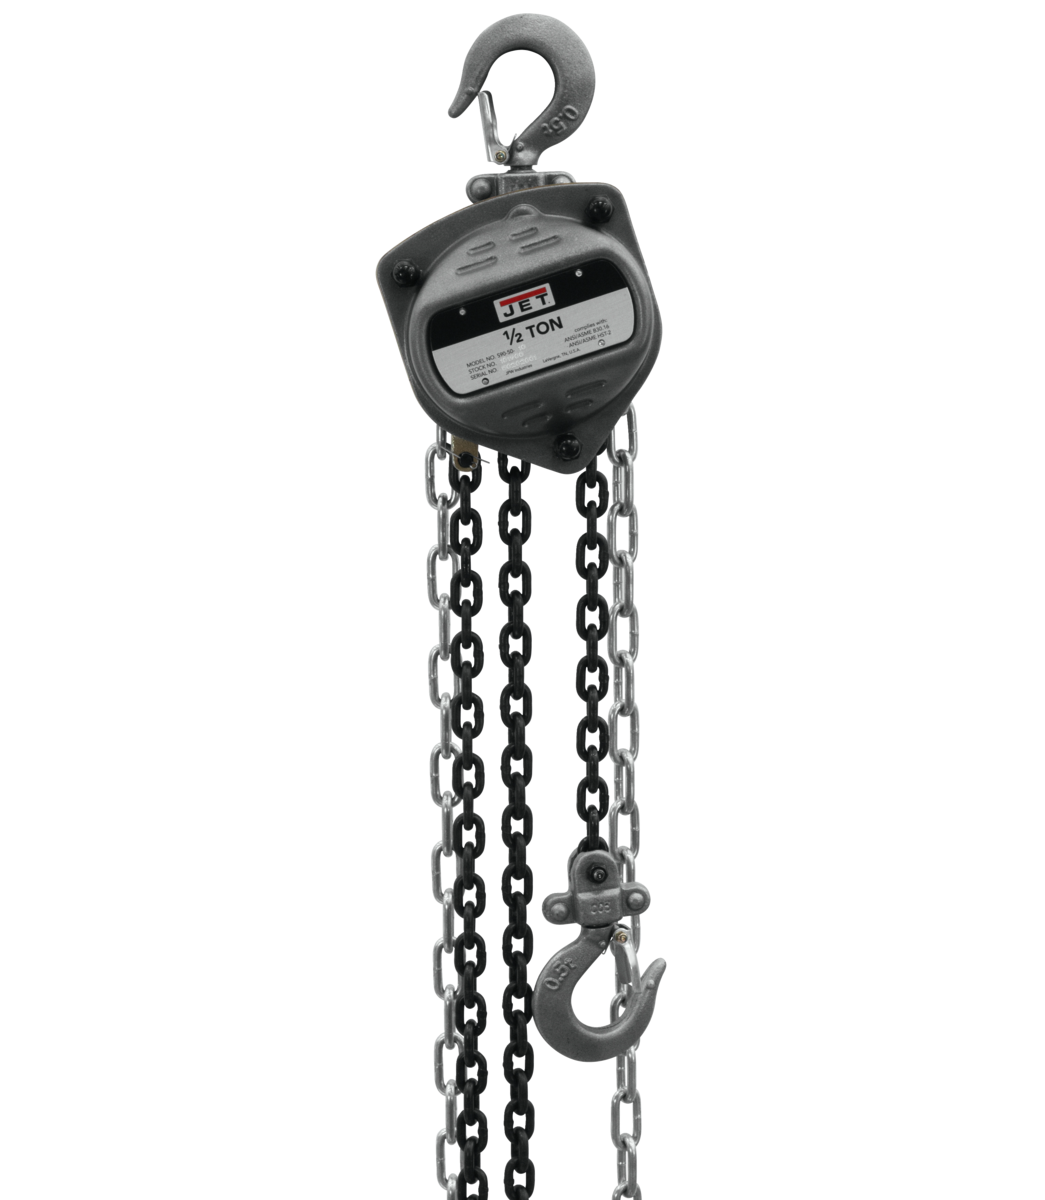 S90-050-15, 1/2-Ton Hand Chain Hoist With 15' Lift